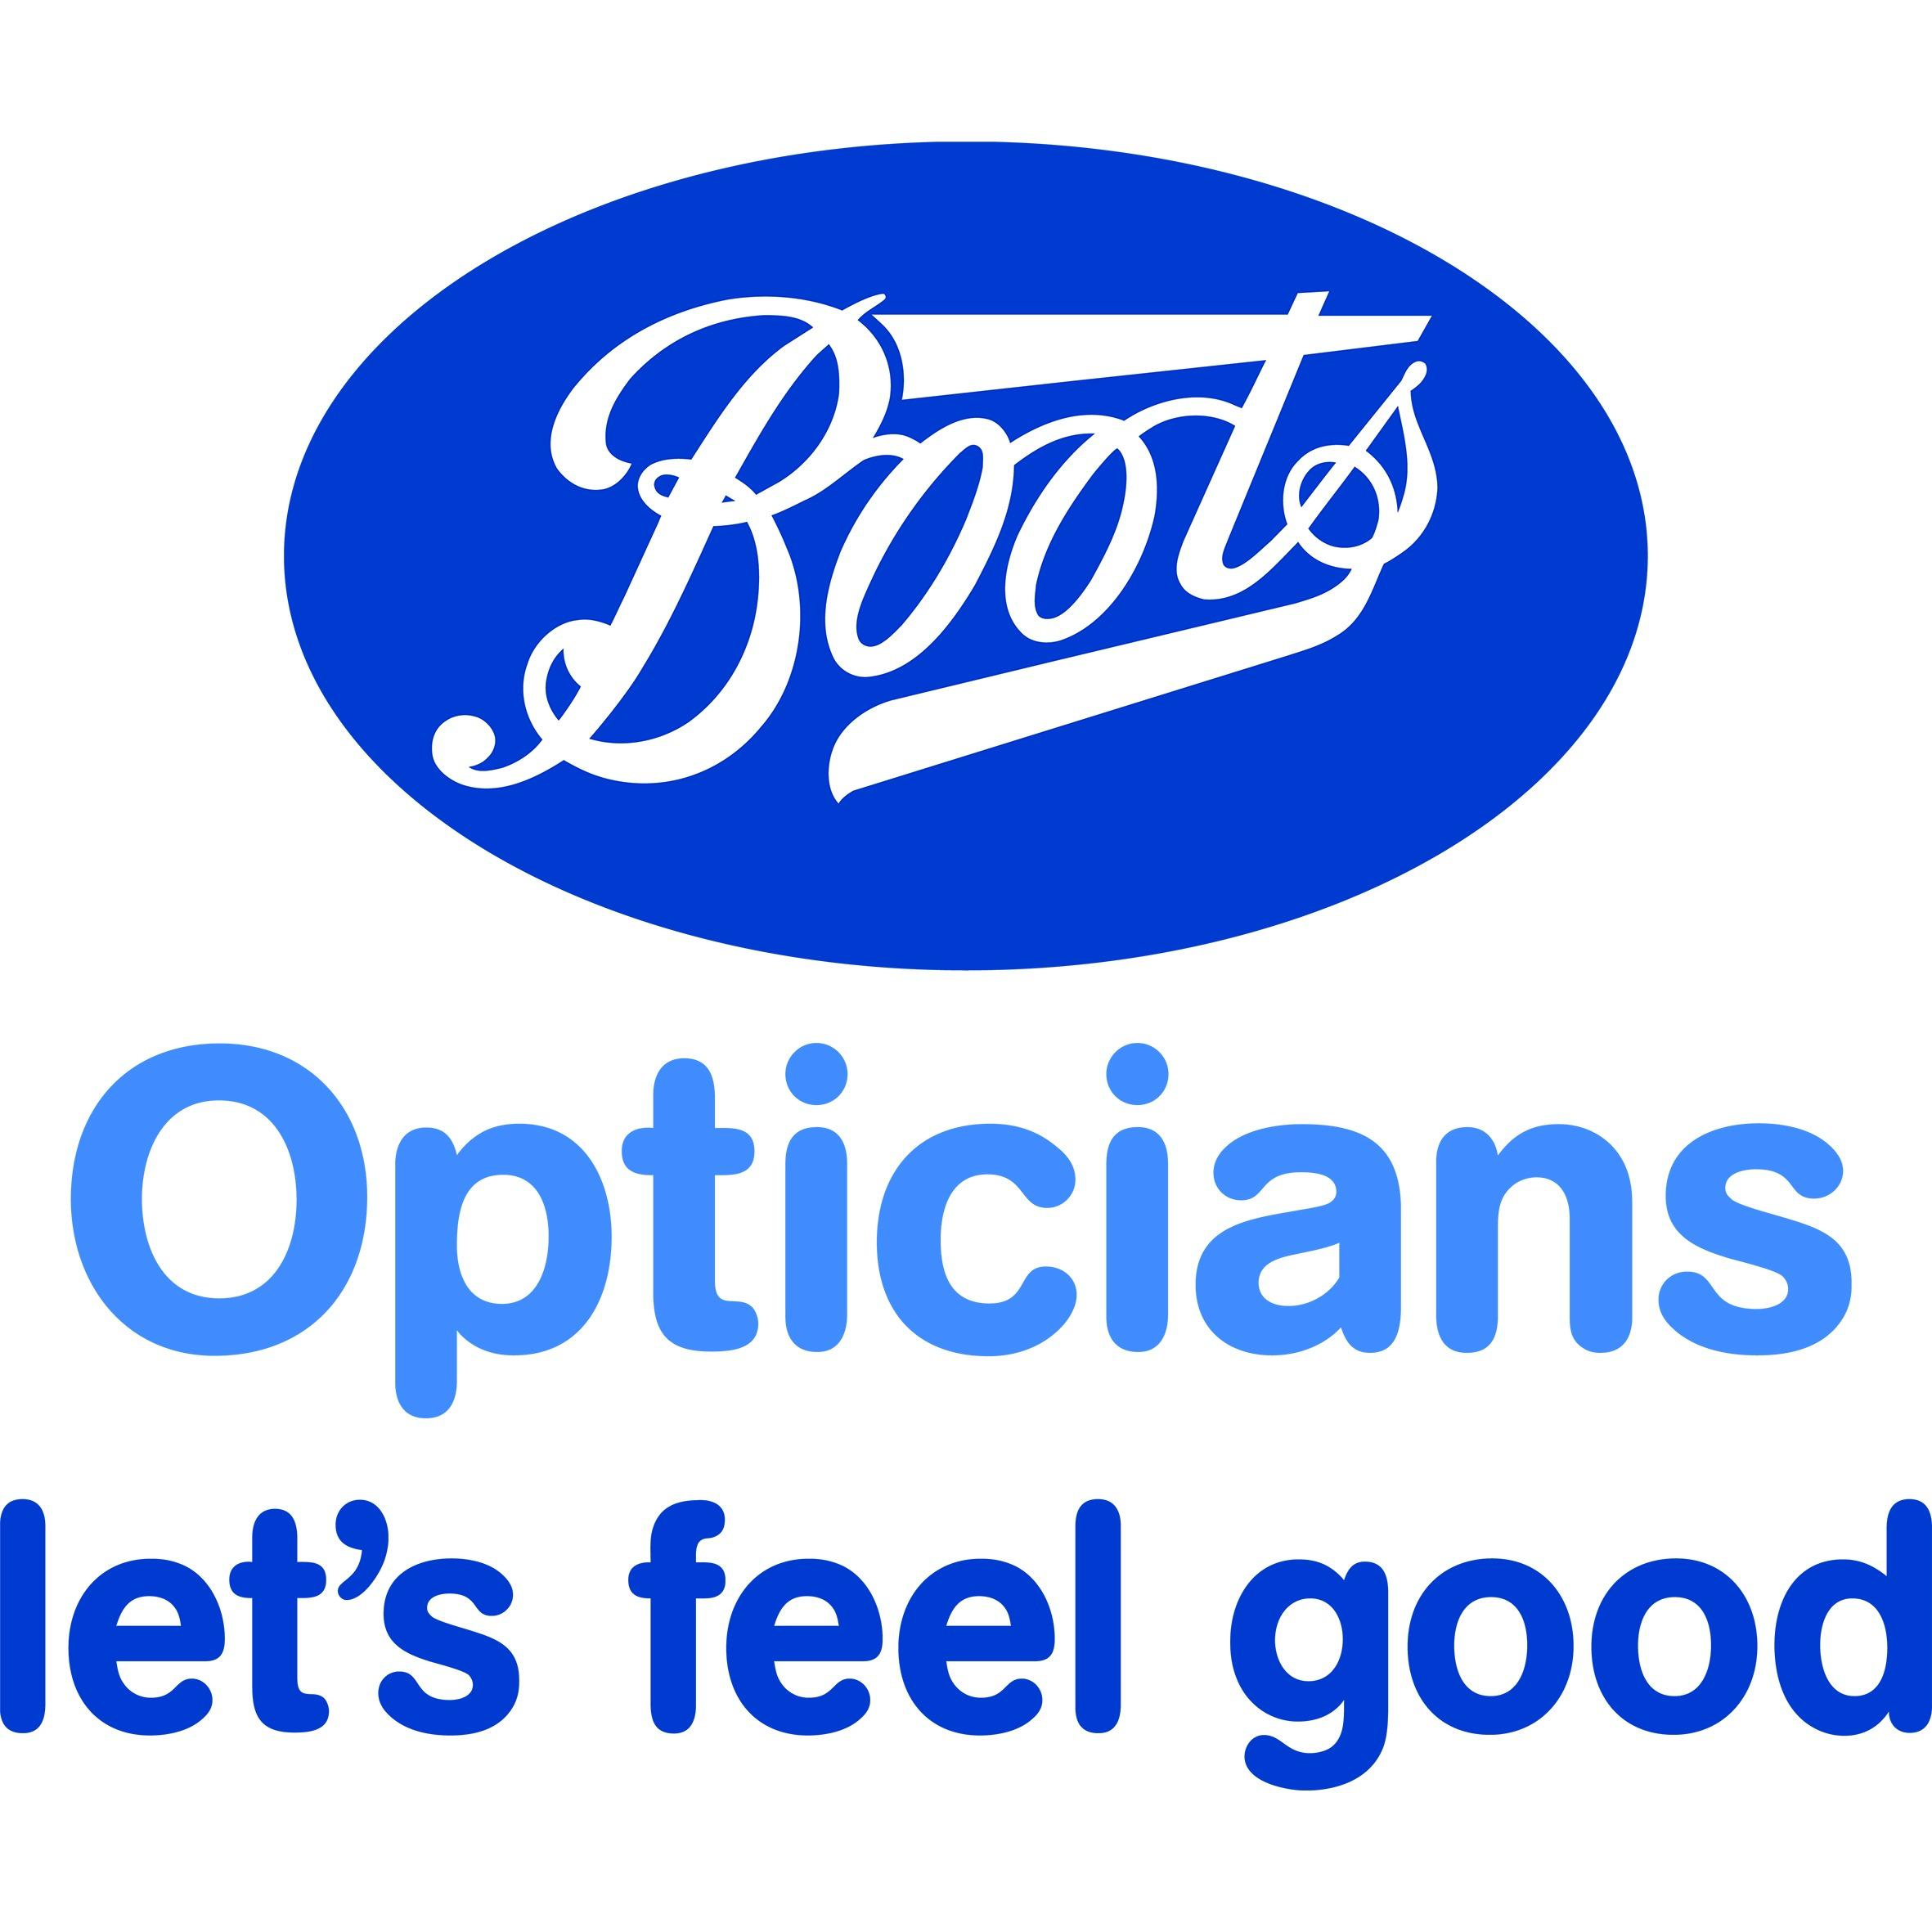 Boots Opticians - Dartford, Kent DA1 1DE - 03451 253776 | ShowMeLocal.com